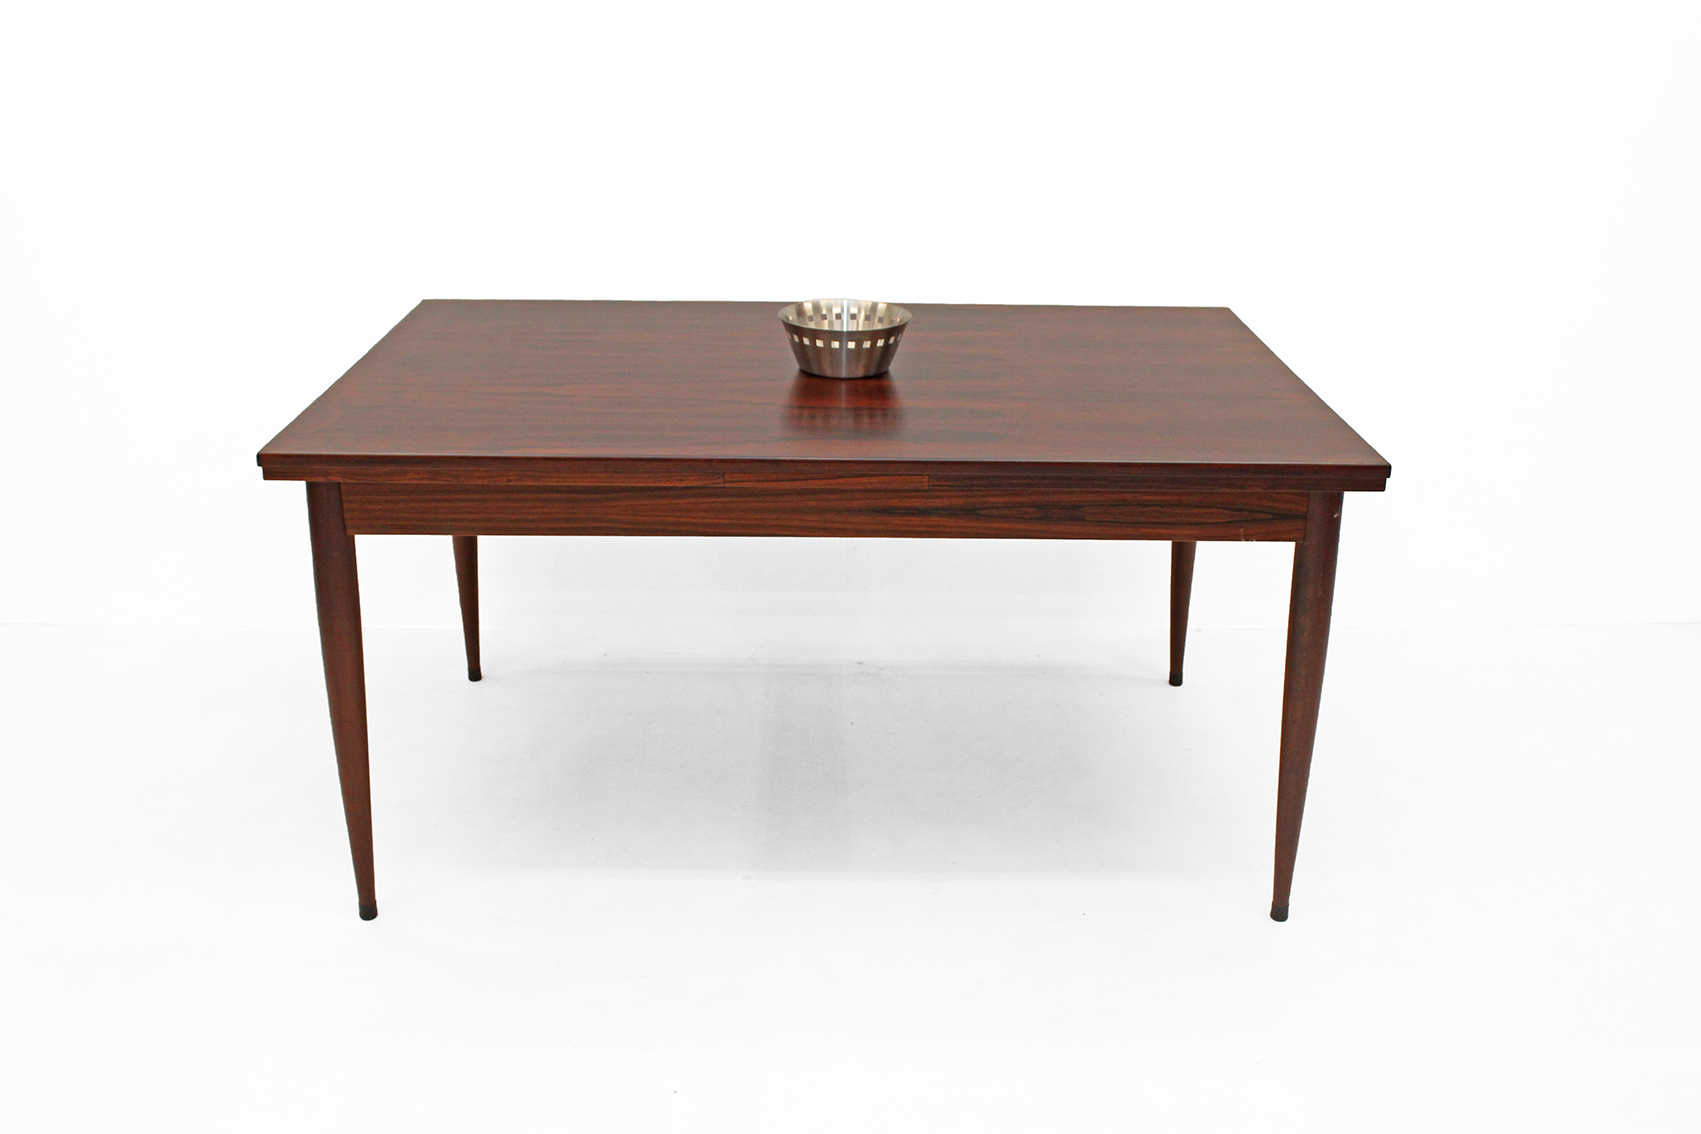 Table in dark red Afromosia teak